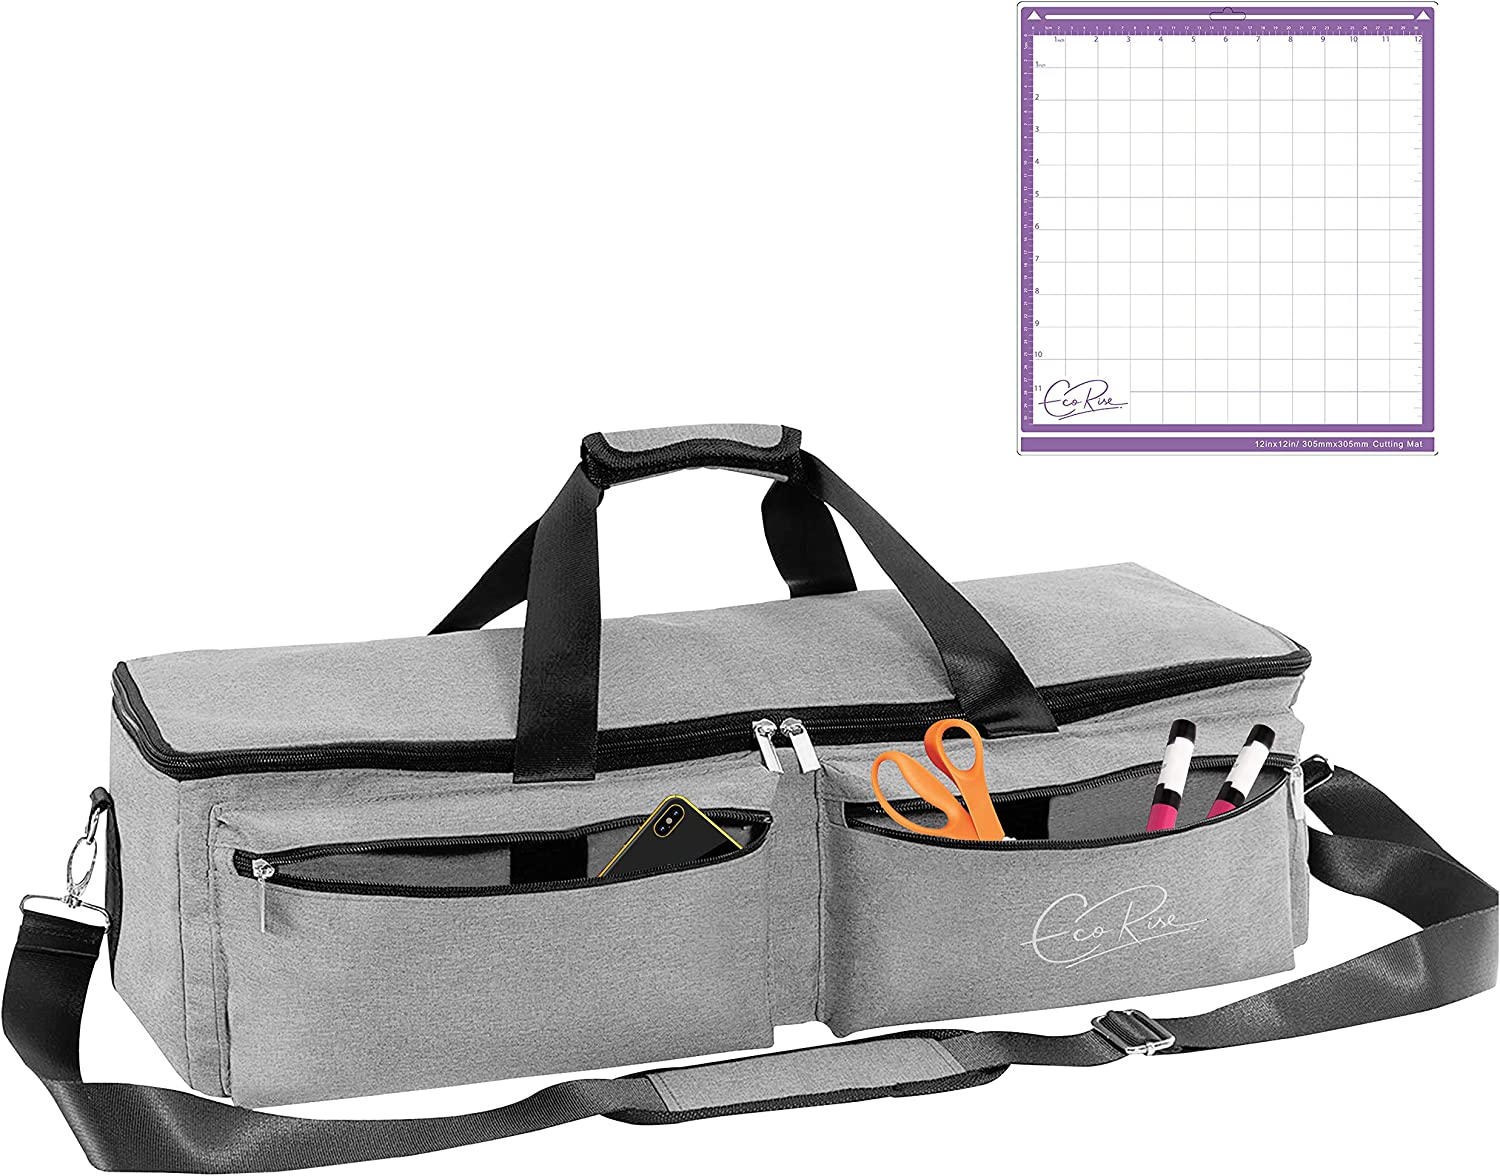 Durable Tote Bag Case Compatible with Cricut Explore Air 2 Bonus EcoRise Cutting Mat Black Silhouette Cameo 3 EcoRise Carrying Bag Compatible with Cricut Explore Air and Cricut Maker